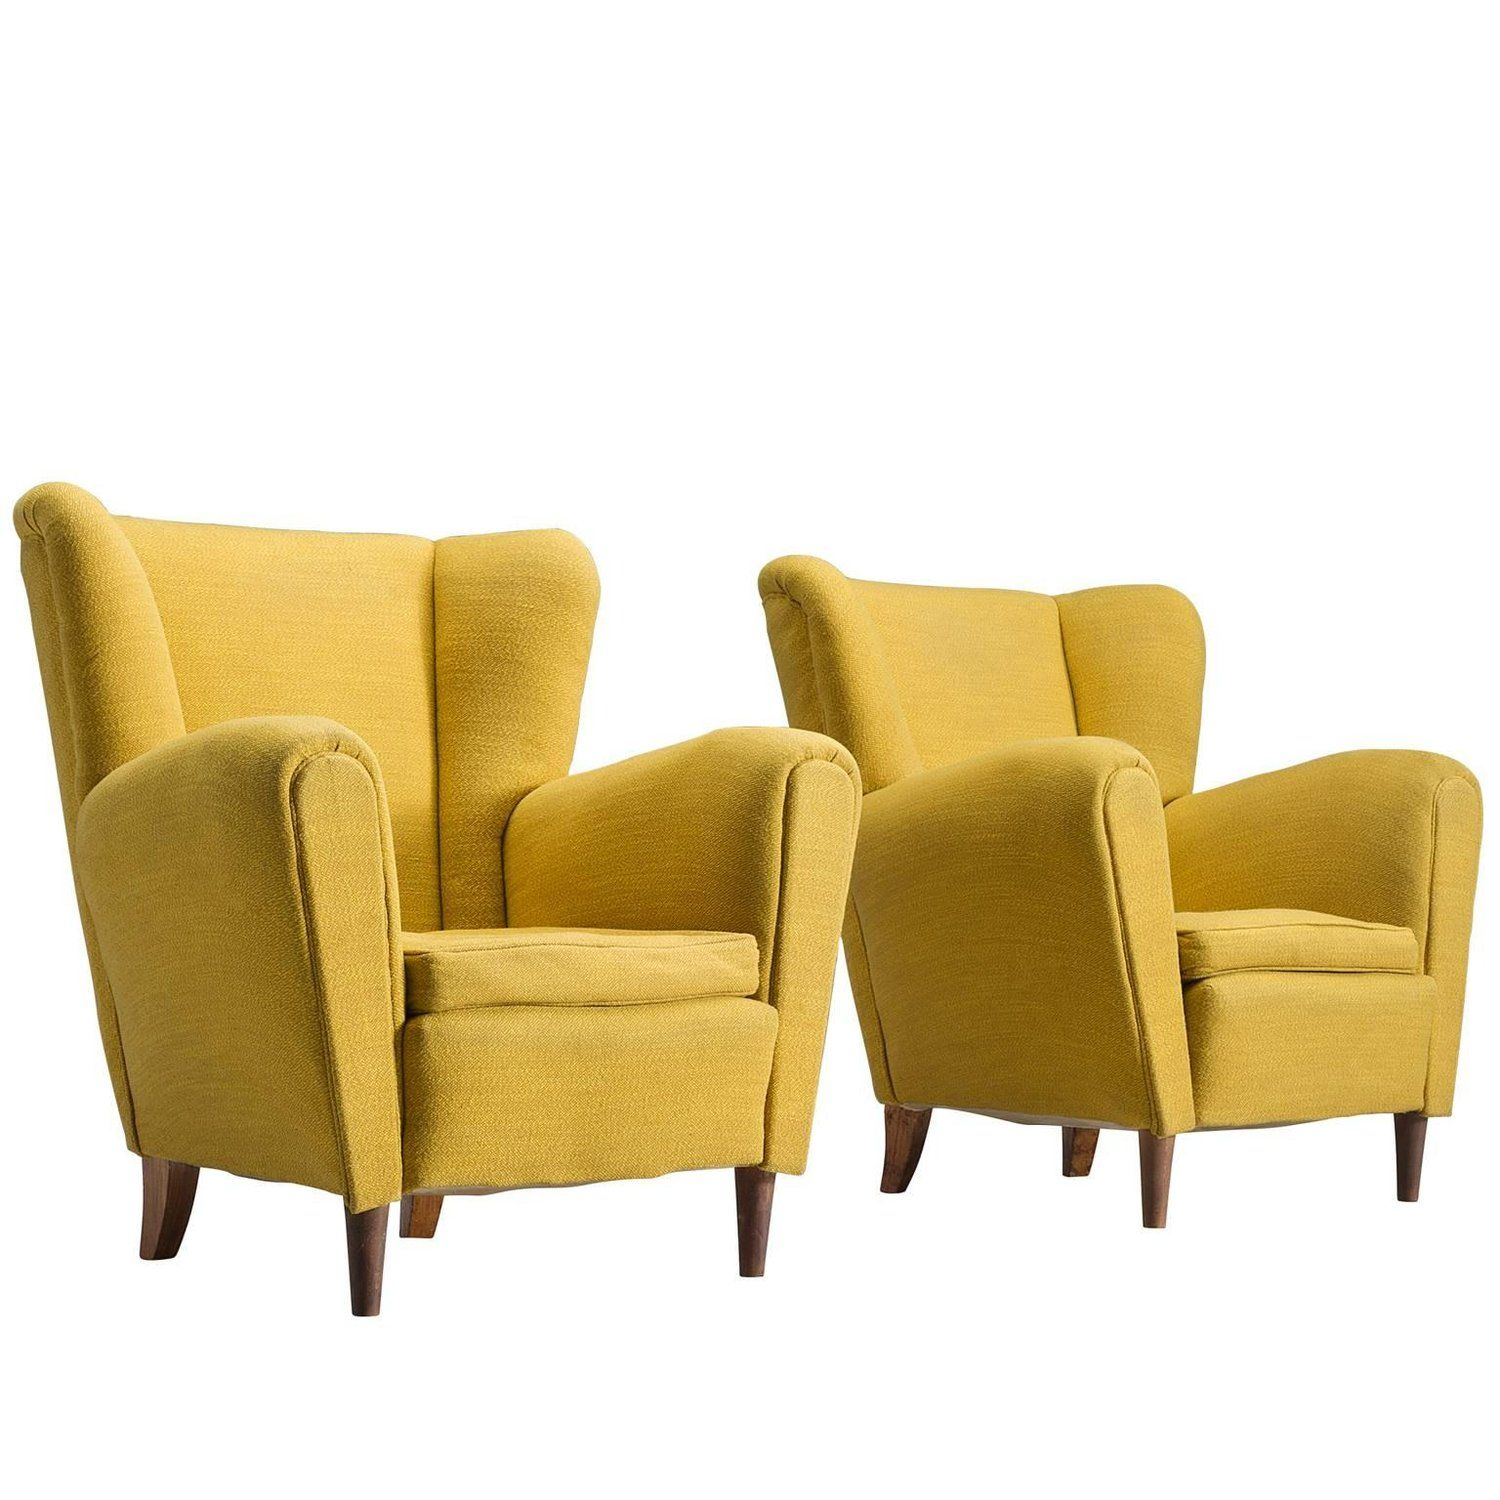 Best Italian Bright Yellow Lounge Chairs 1950S Lounge Chair 400 x 300